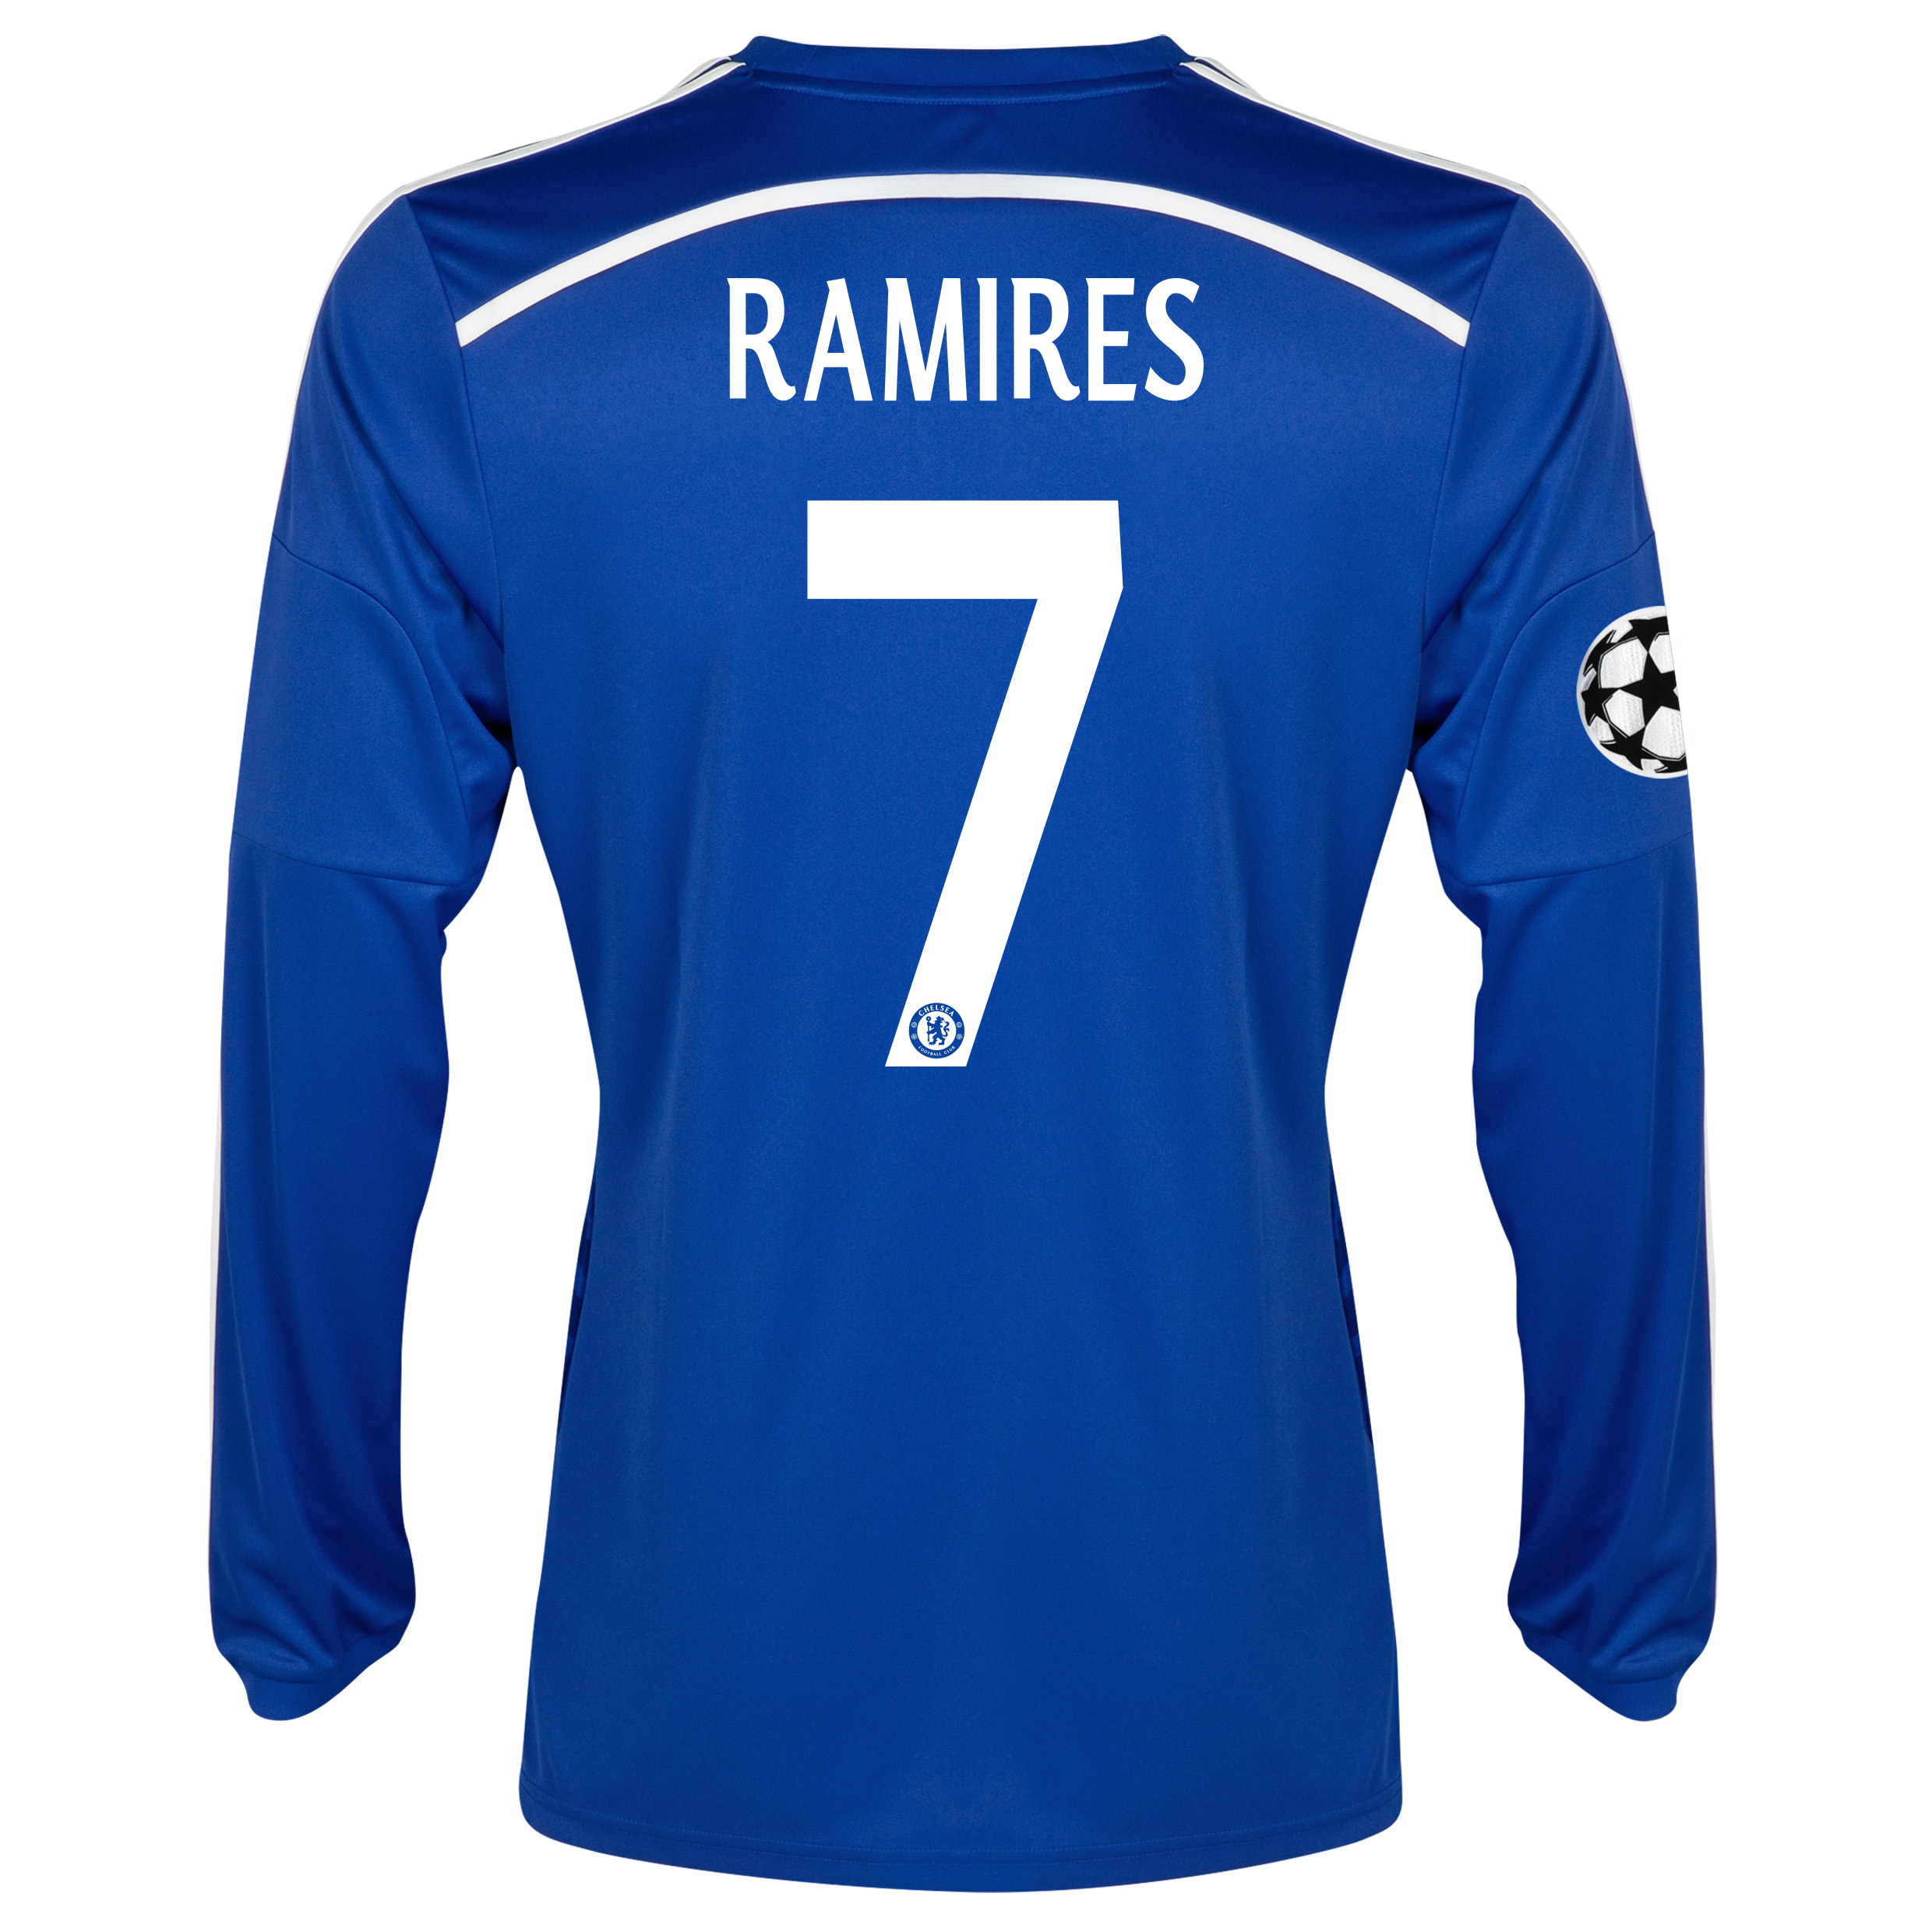 Chelsea UEFA Champions League Home Shirt 2014/15 - Long Sleeve - Kids Blue with Ramires 7 printing